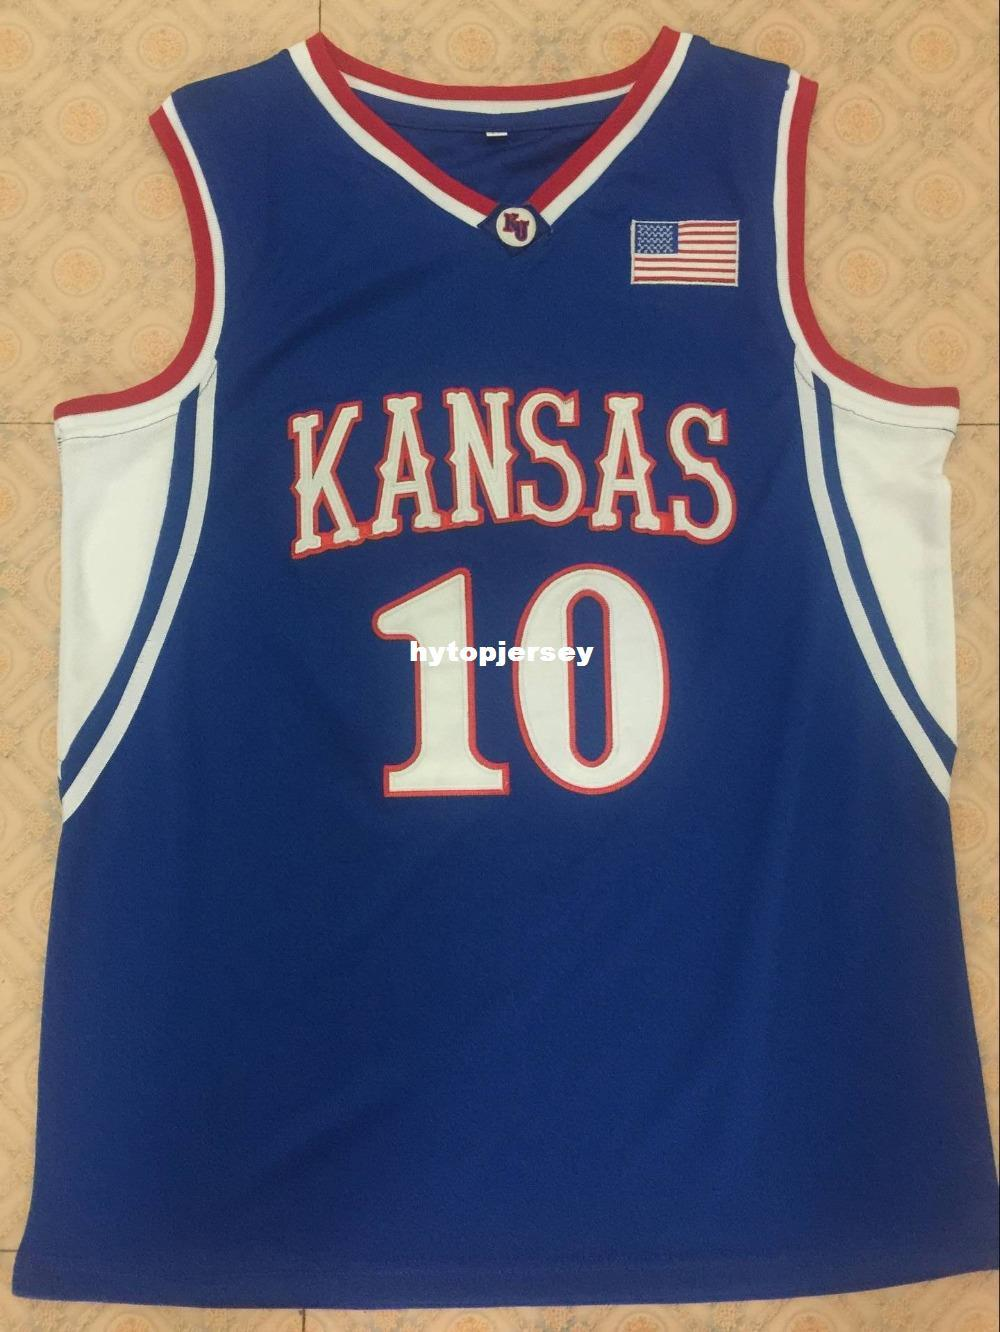 half off b5d64 c8a29 #10 KIRK HINRICH Kansas Jayhawks Basketball Jersey All Size Embroidery  Stitched Customize any name and name XS-6XL vest Jerseys NCAA